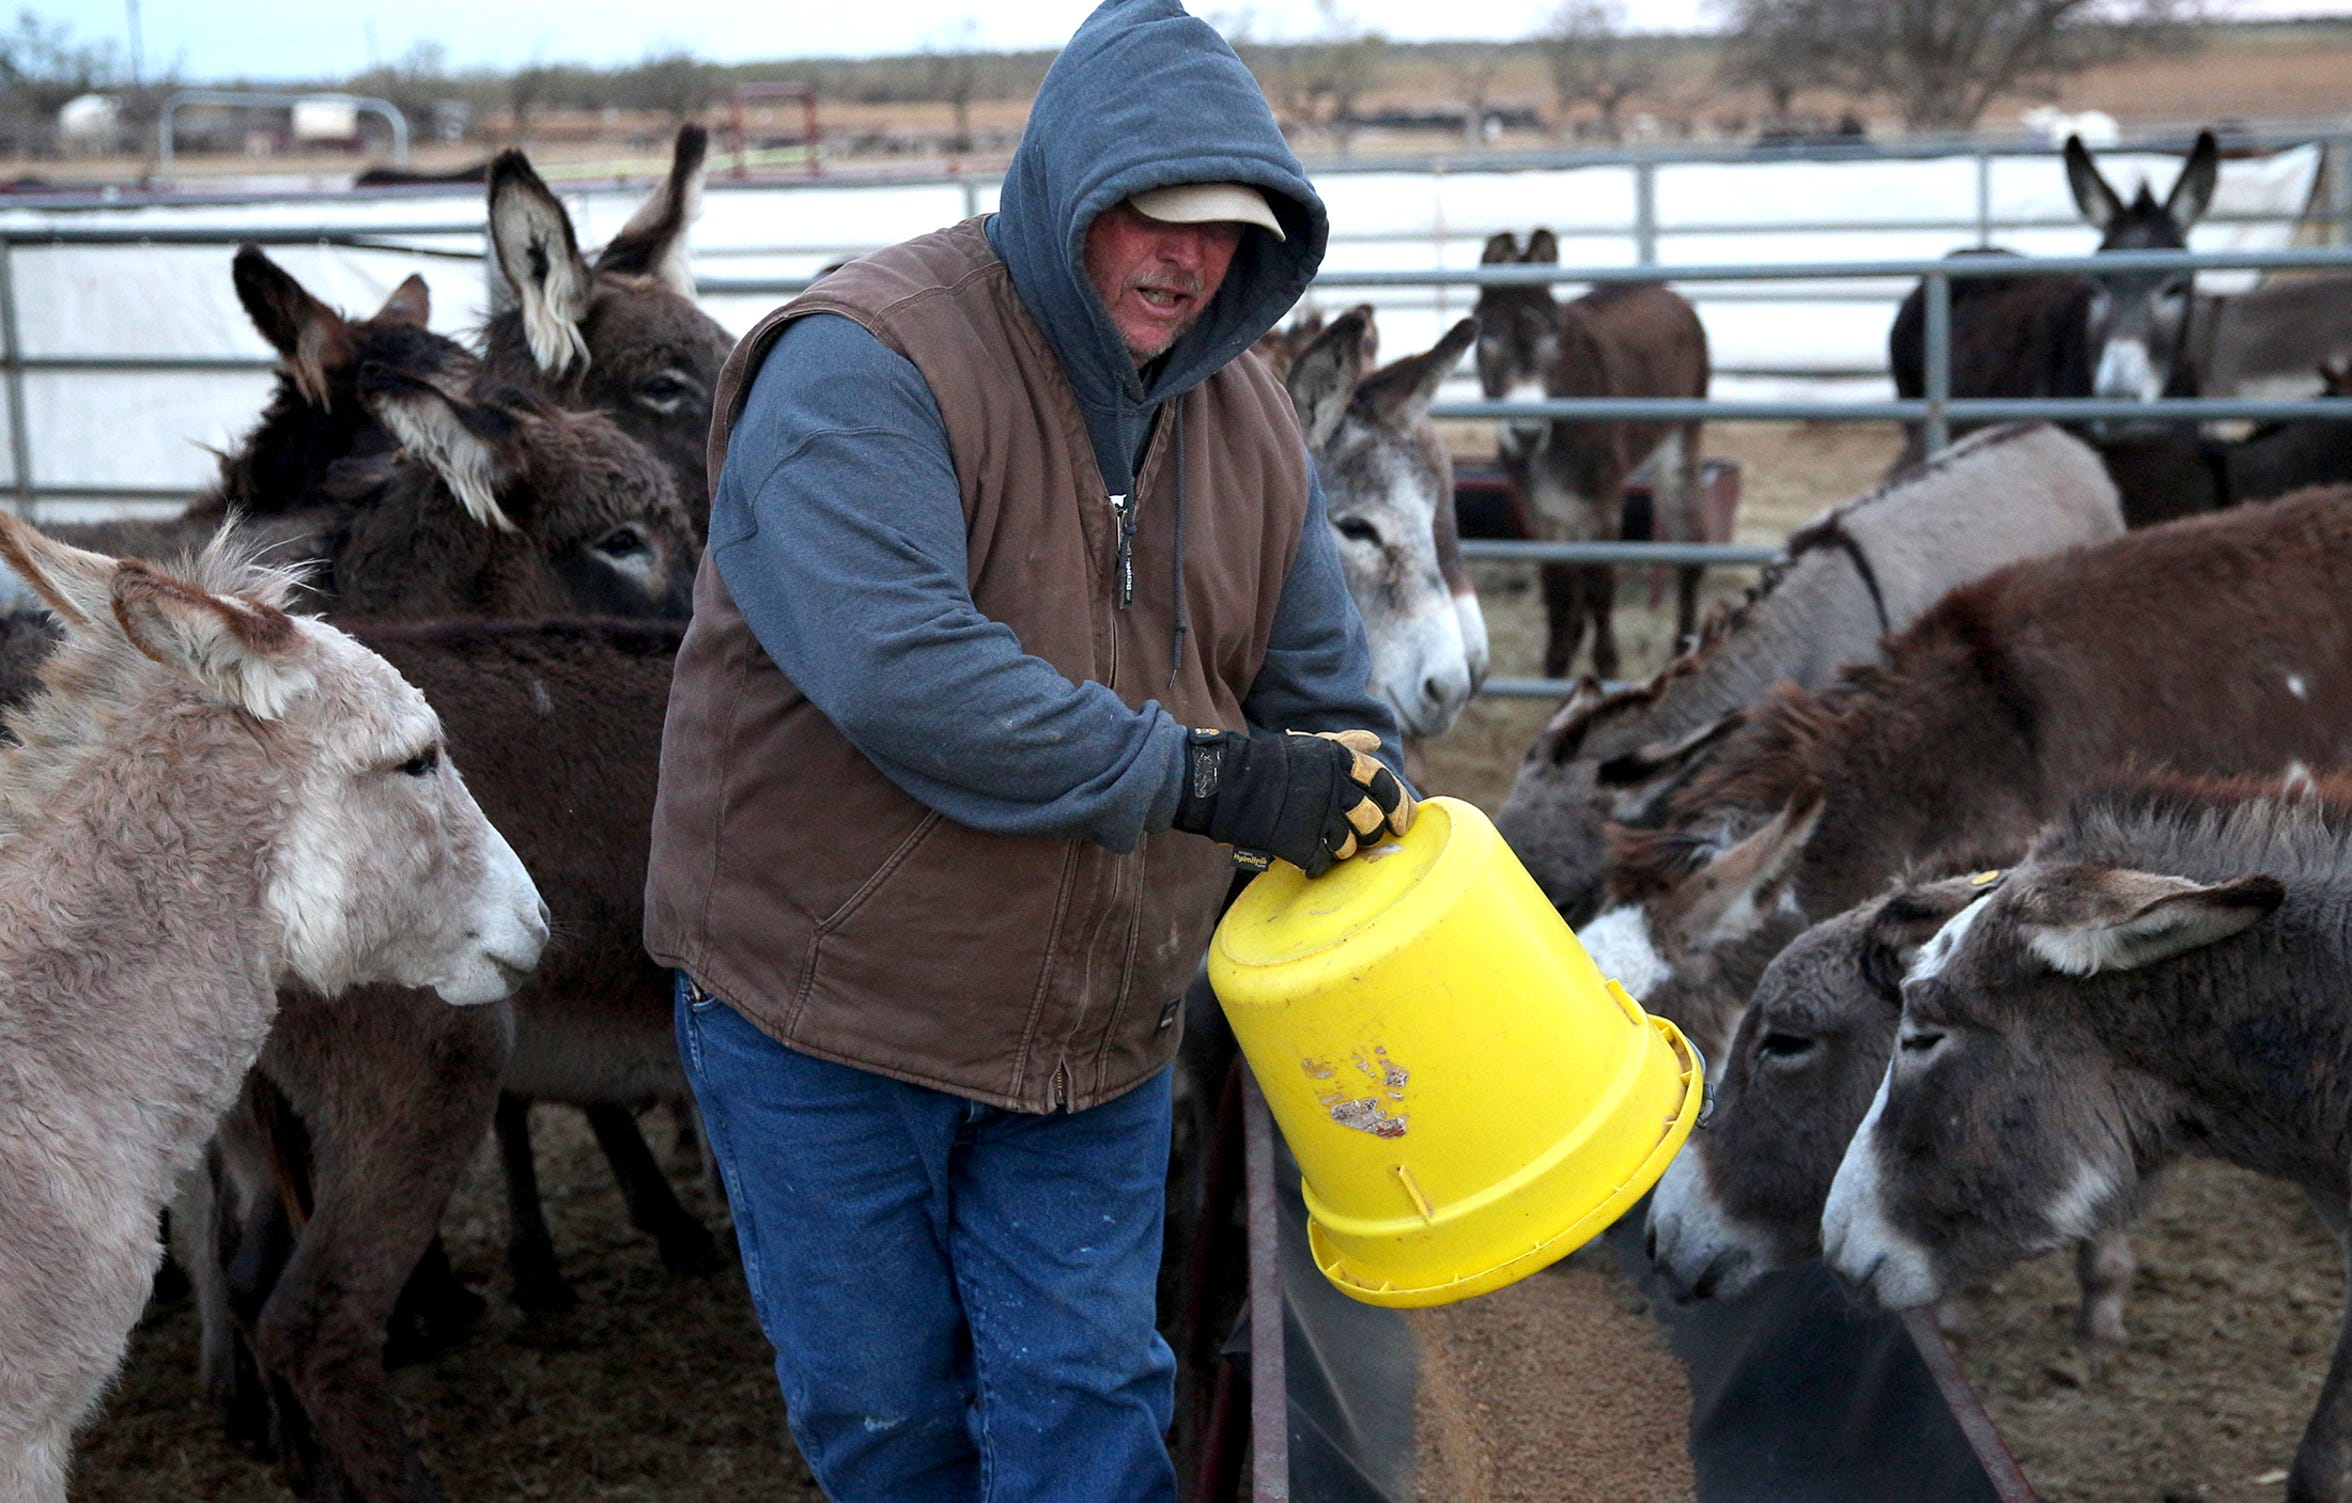 Randall Parker feeds donkeys at the Peaceful Valley Donkey Rescue on Tuesday, Nov. 12, 2019.